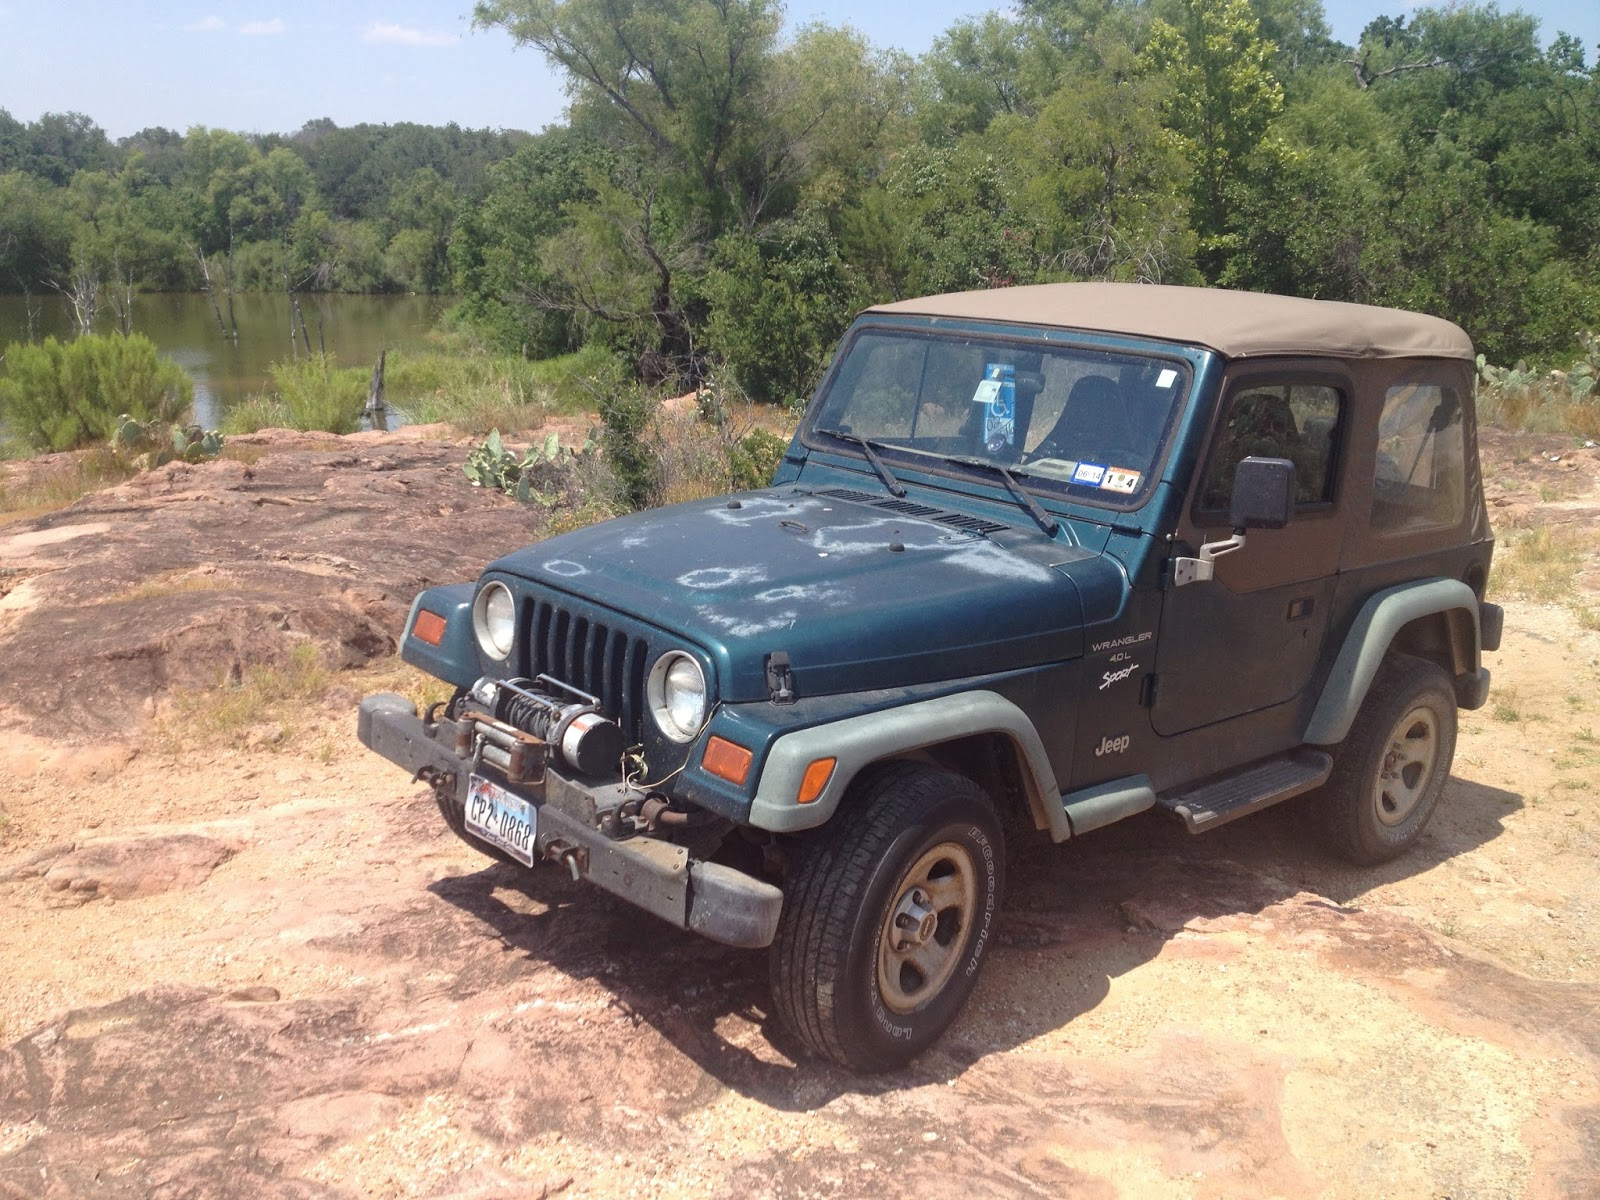 idle thoughts: things that work: my jeep wrangler at 300,000 miles